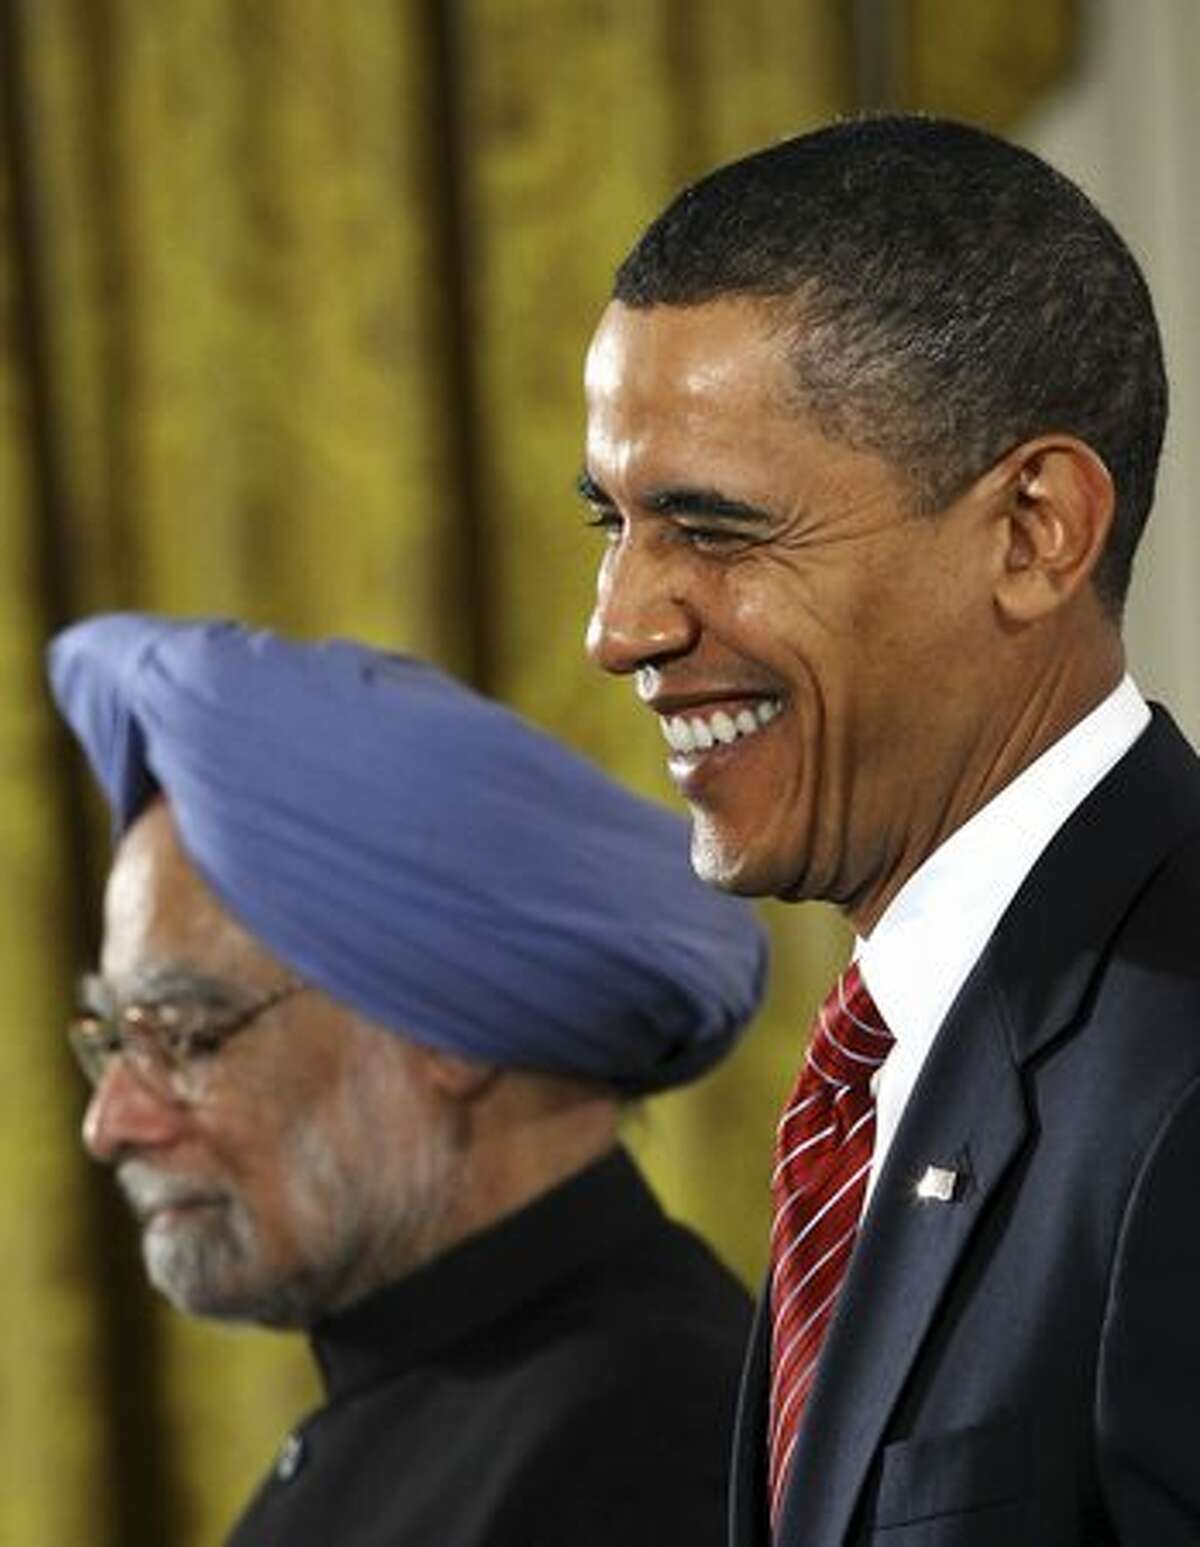 Indian Prime Minister Manmohan Singh and U.S. President Barack Obama participate in a joint press conference in the East Room of the White House.